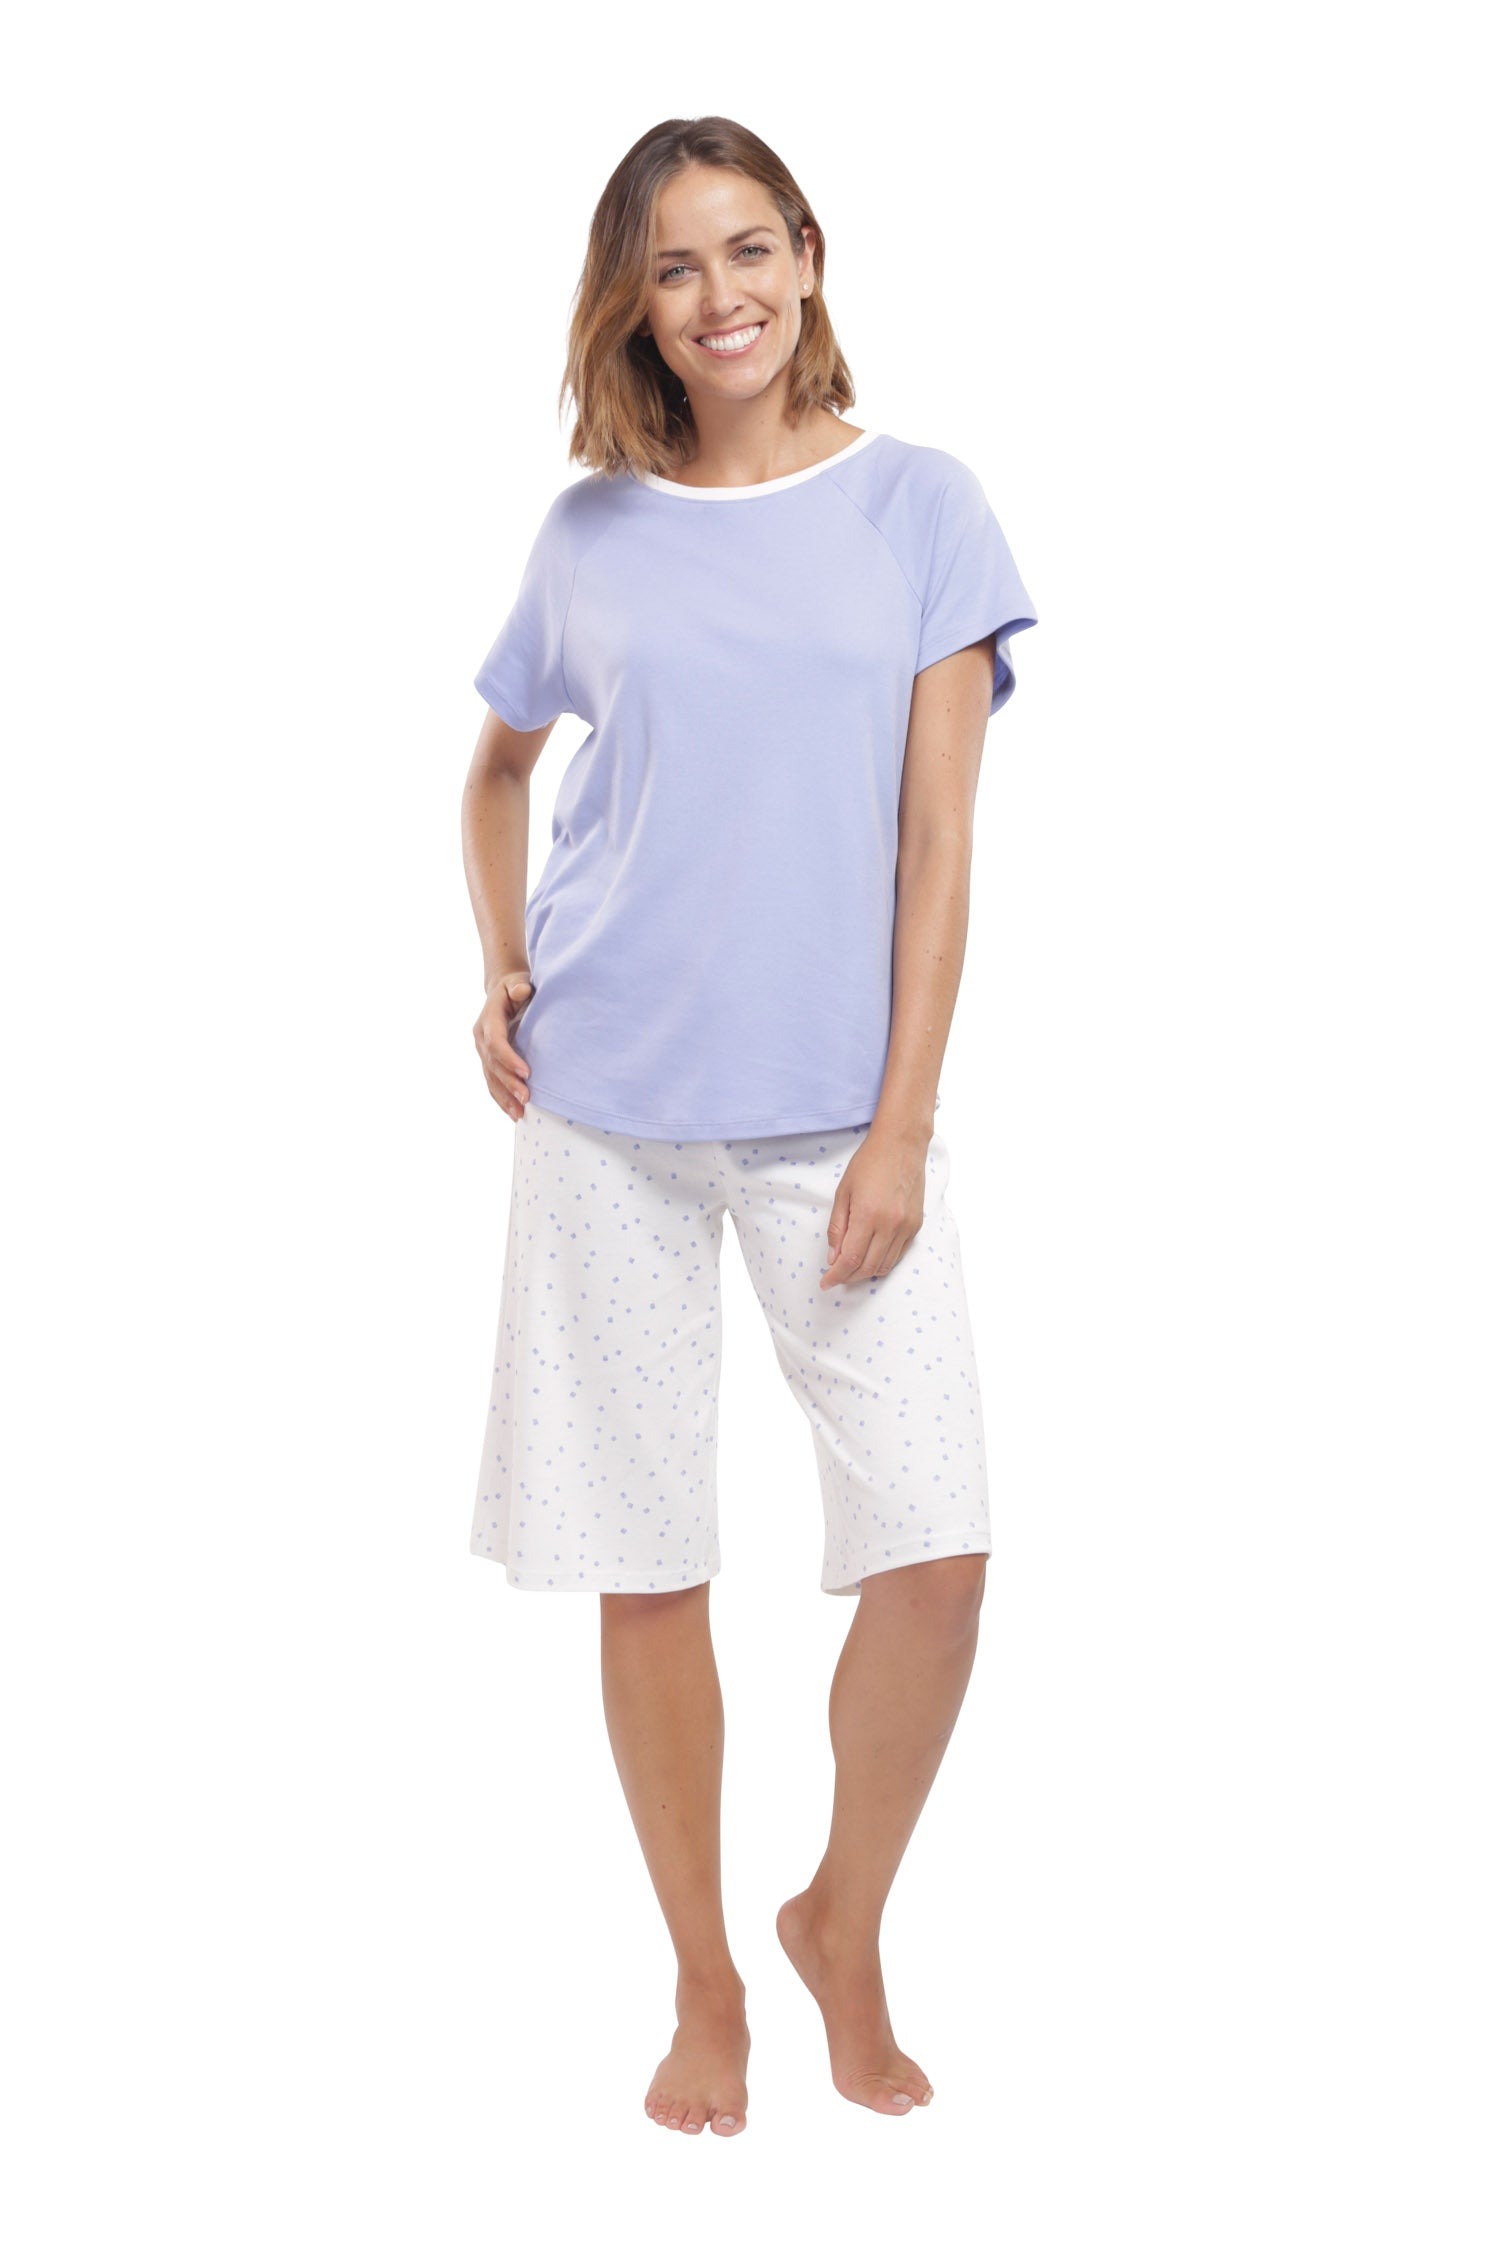 The Gaucho - Bermuda Shorts & T-Shirt (Limited Sizes)